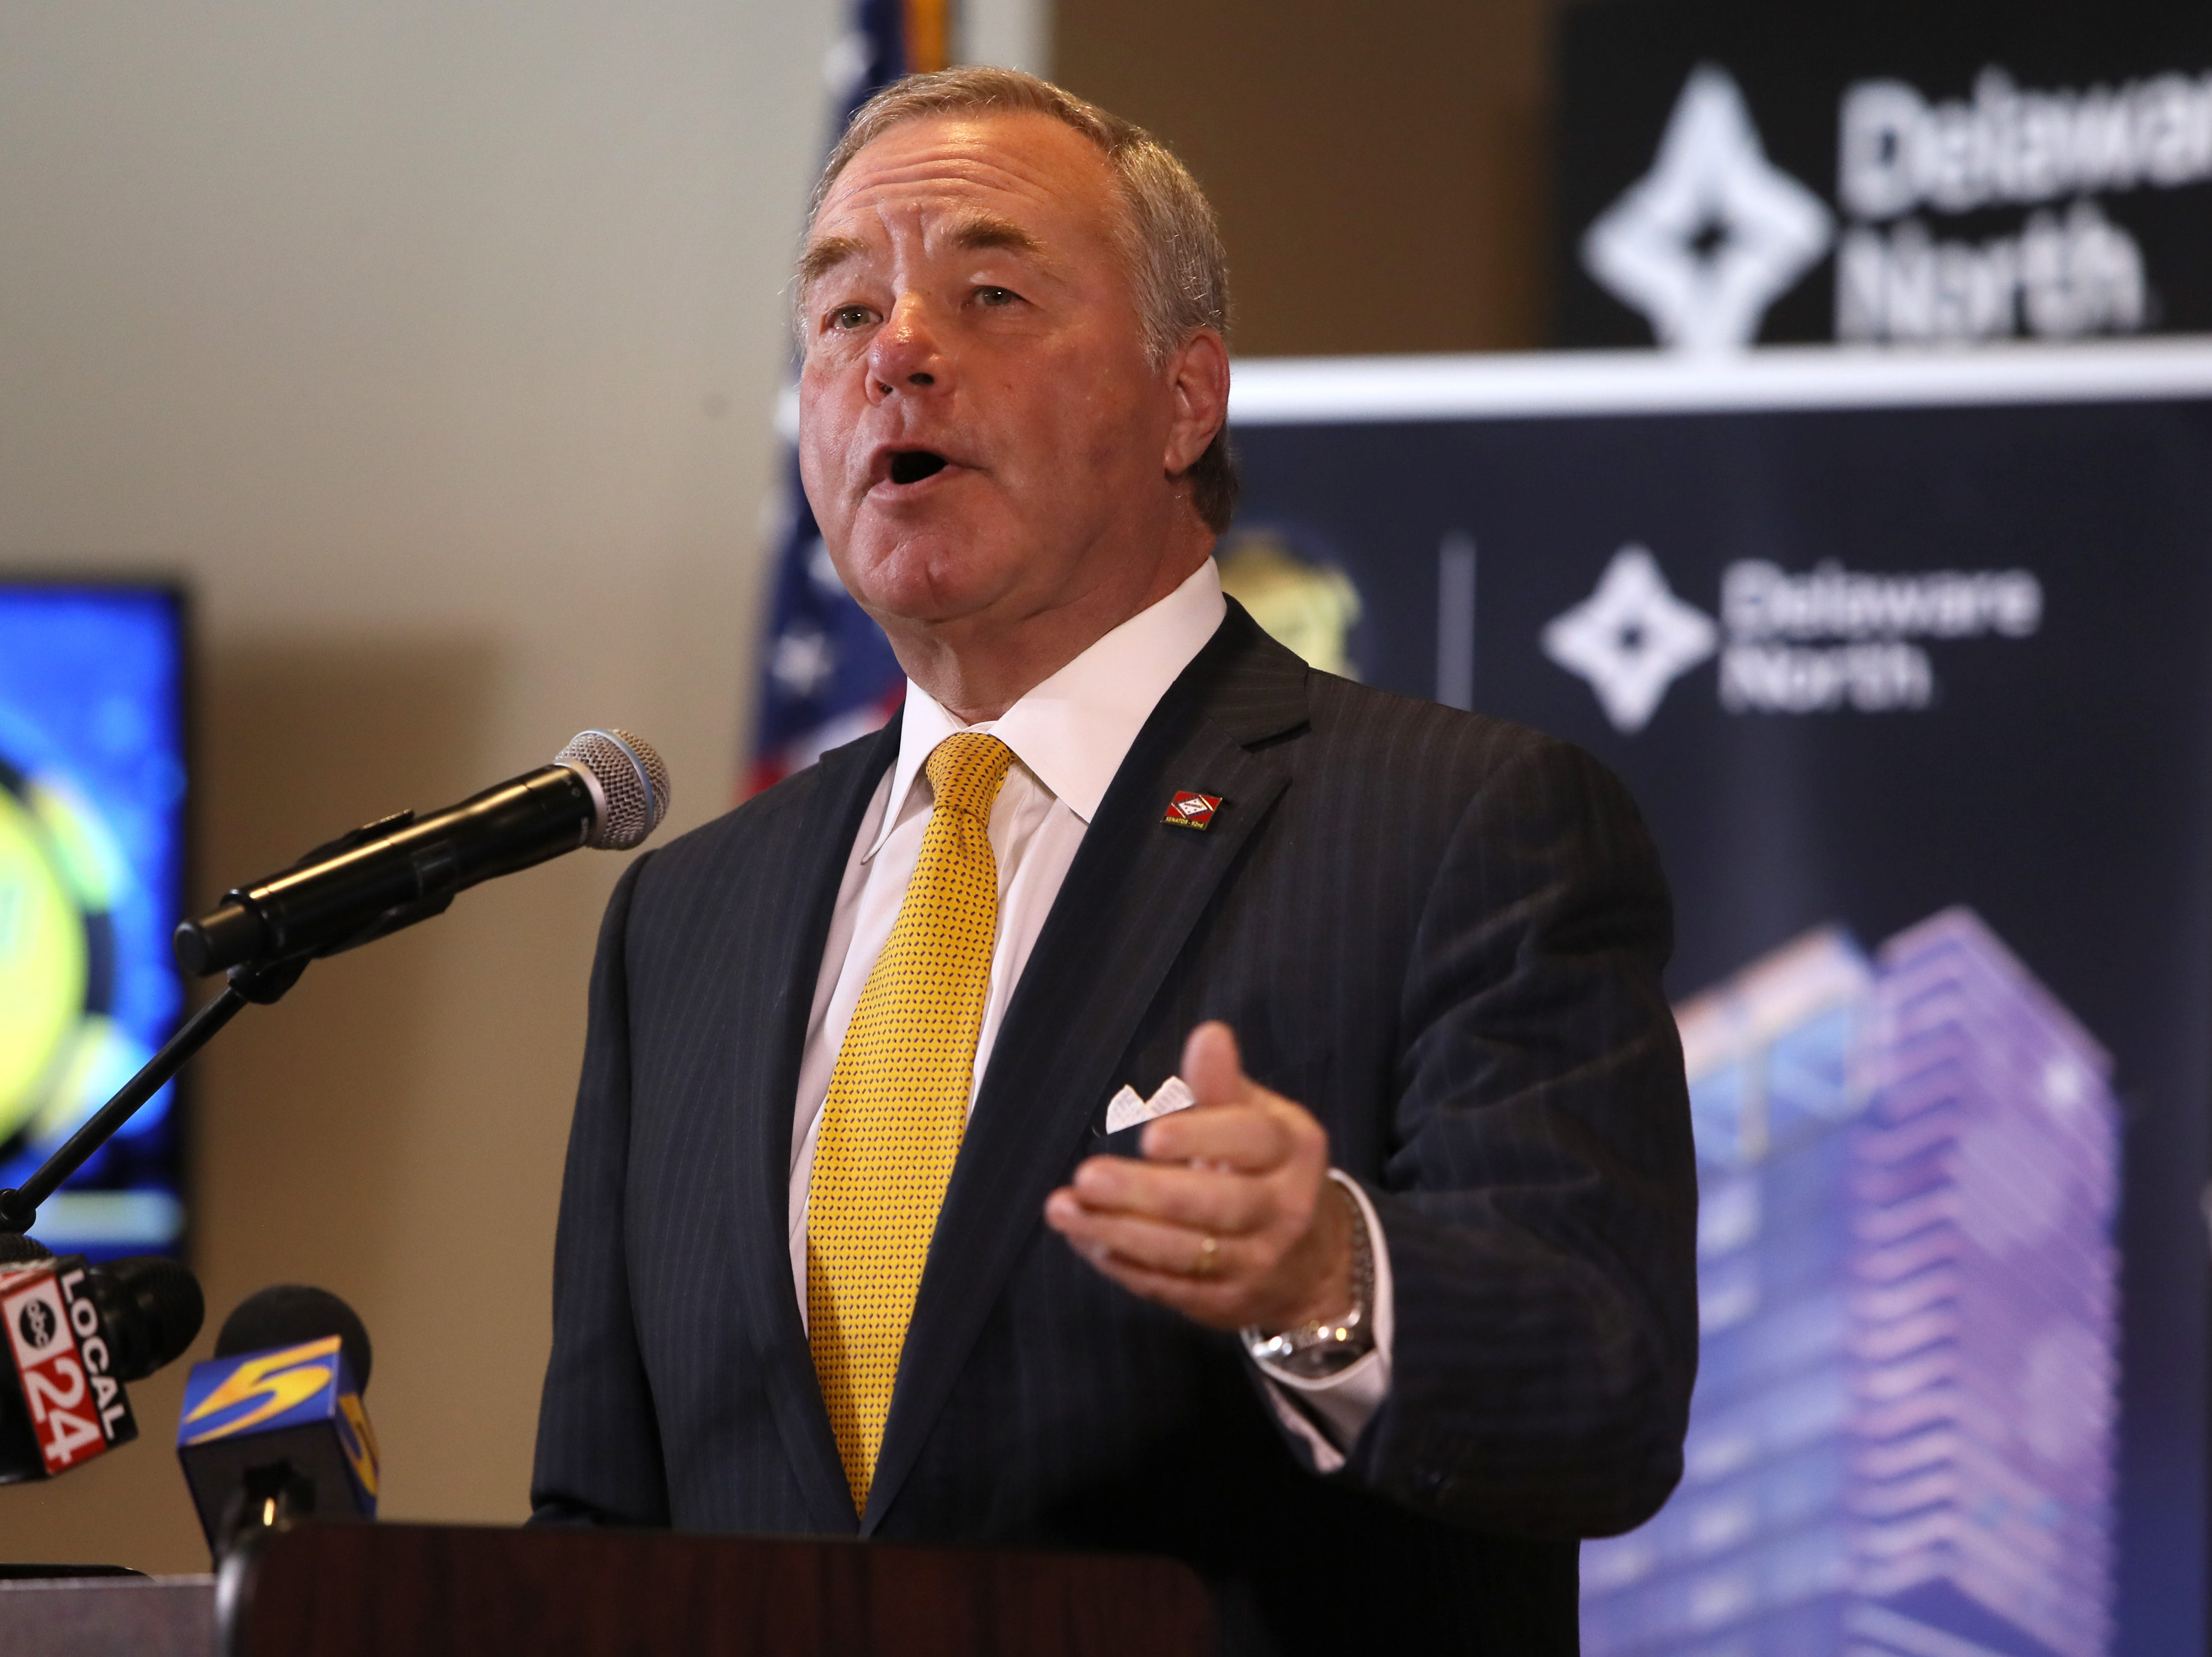 Akansas Sen. Keith Ingram joins hospitality company Delaware North as they make an announcement of their $250 million expansion of Southland Gaming and Racing at the West Memphis casino on Thursday, Jan. 24, 2019.